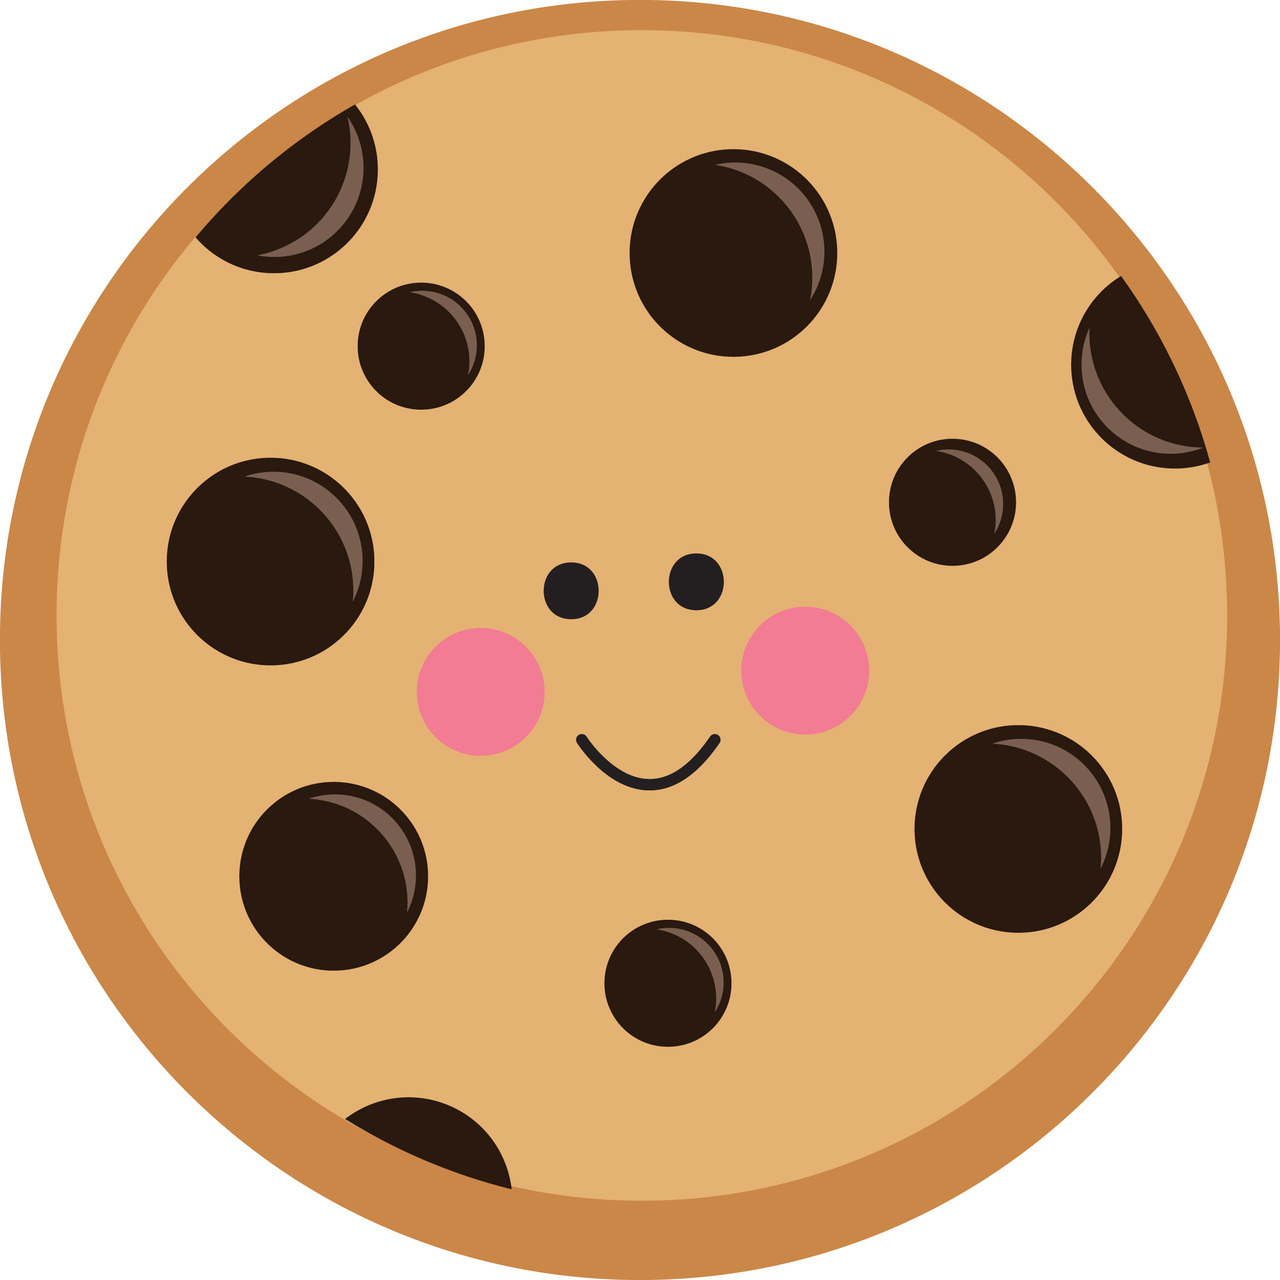 1280x1280 Chocolate Chip Cookie Drawing Cute Chocolate Chip Cookie (40% Off